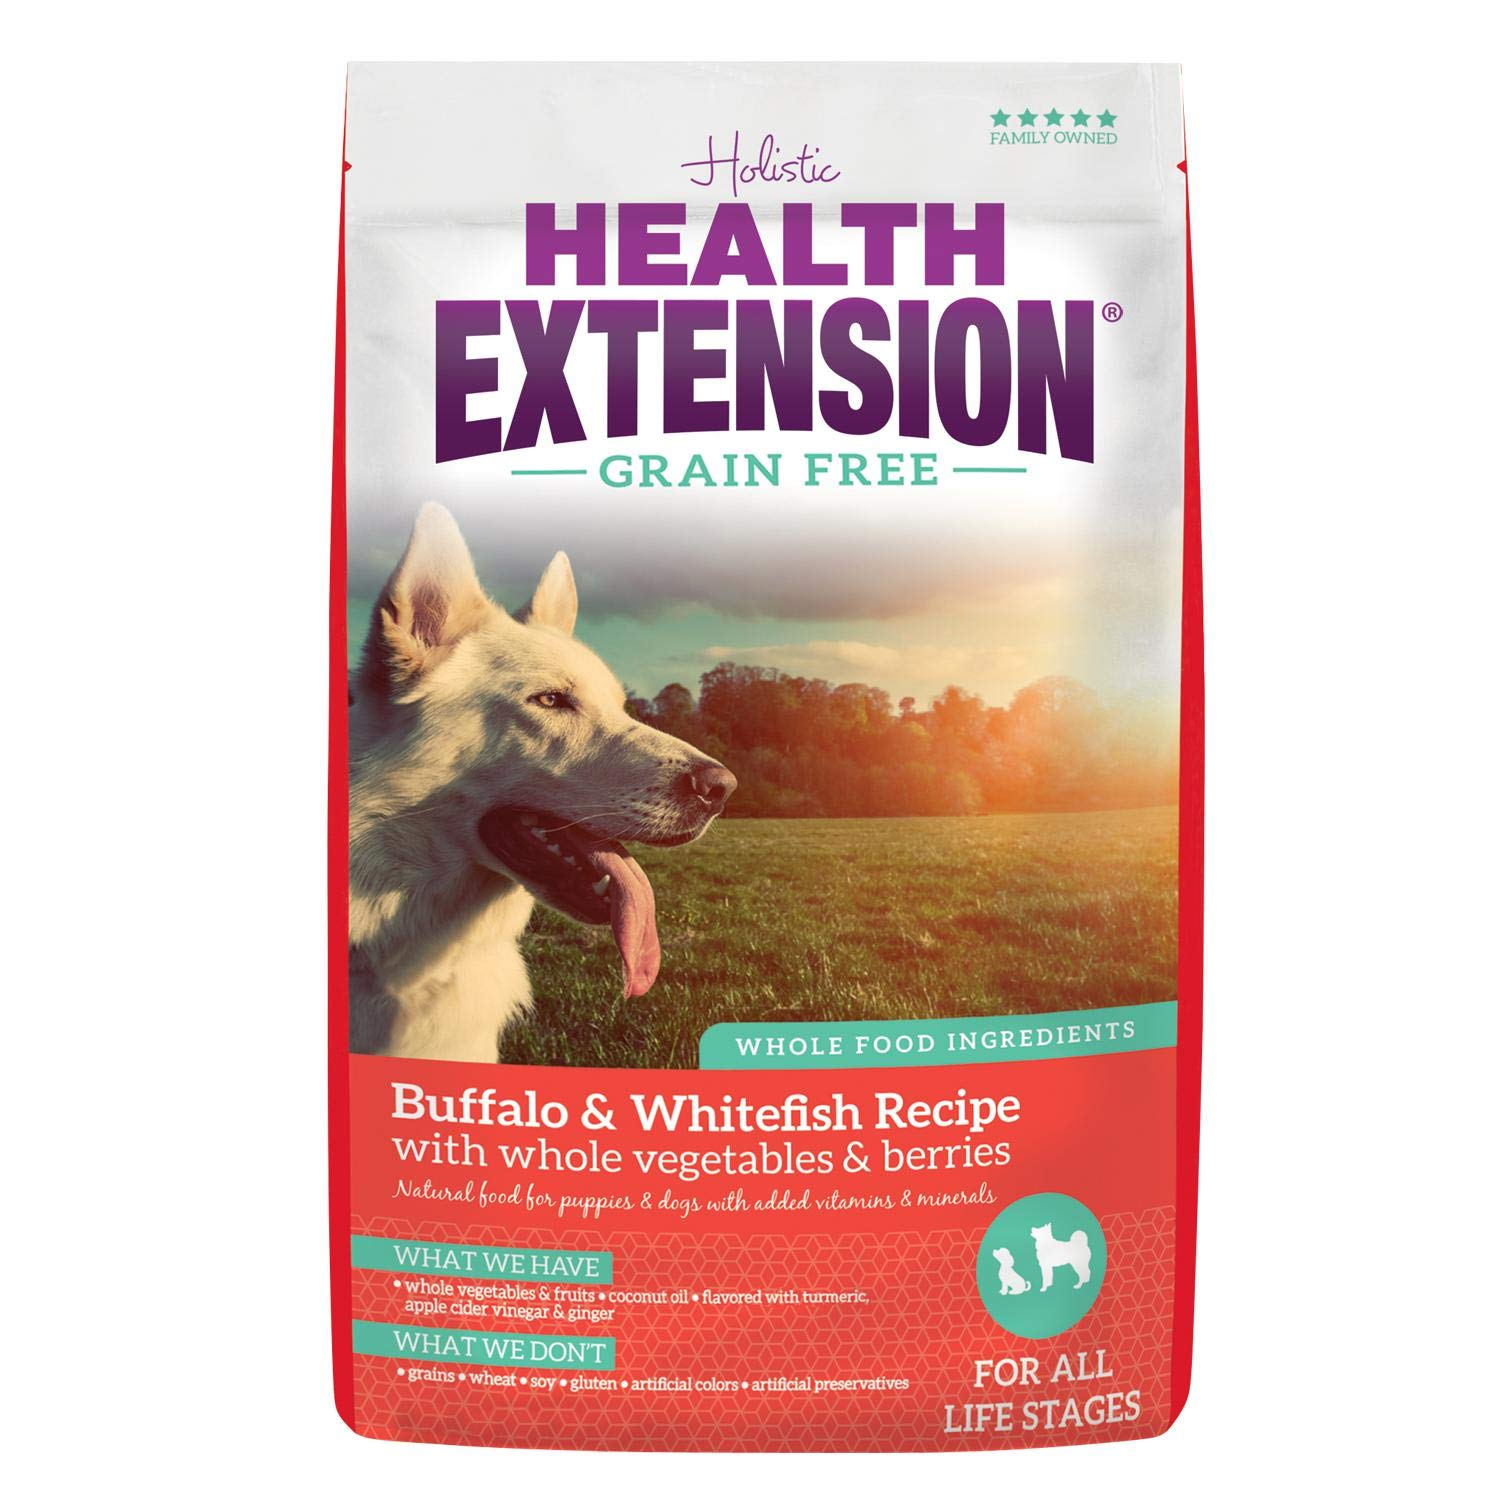 Health Extension Grain Free Dry Dog Food - Buffalo & Whitefish Recipe, 23.5lb by Health Extension